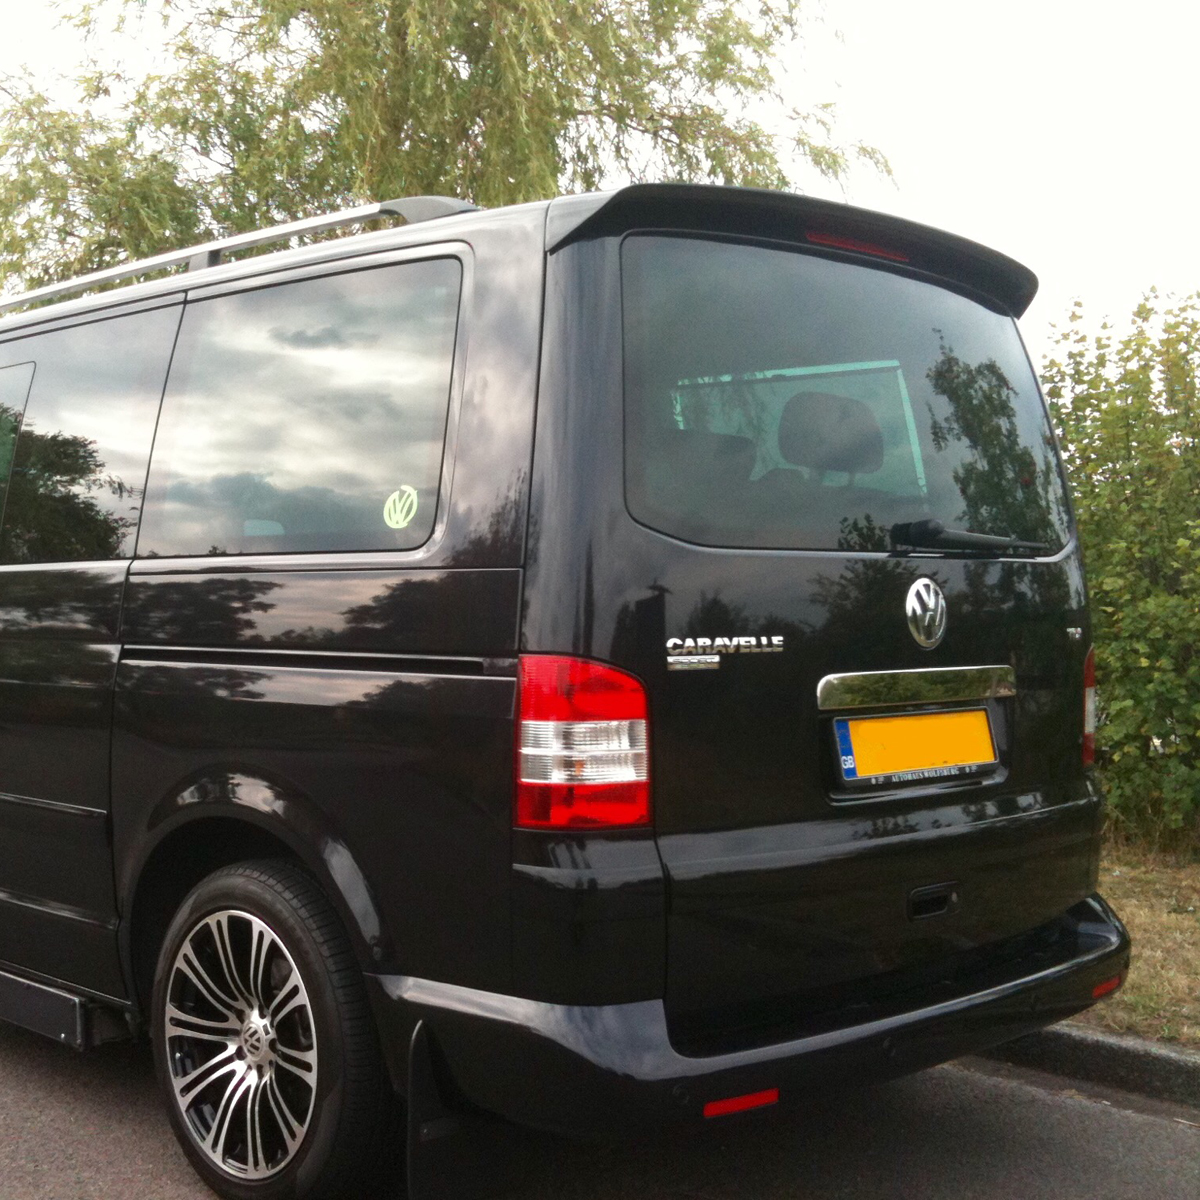 home vw transporter - photo #41